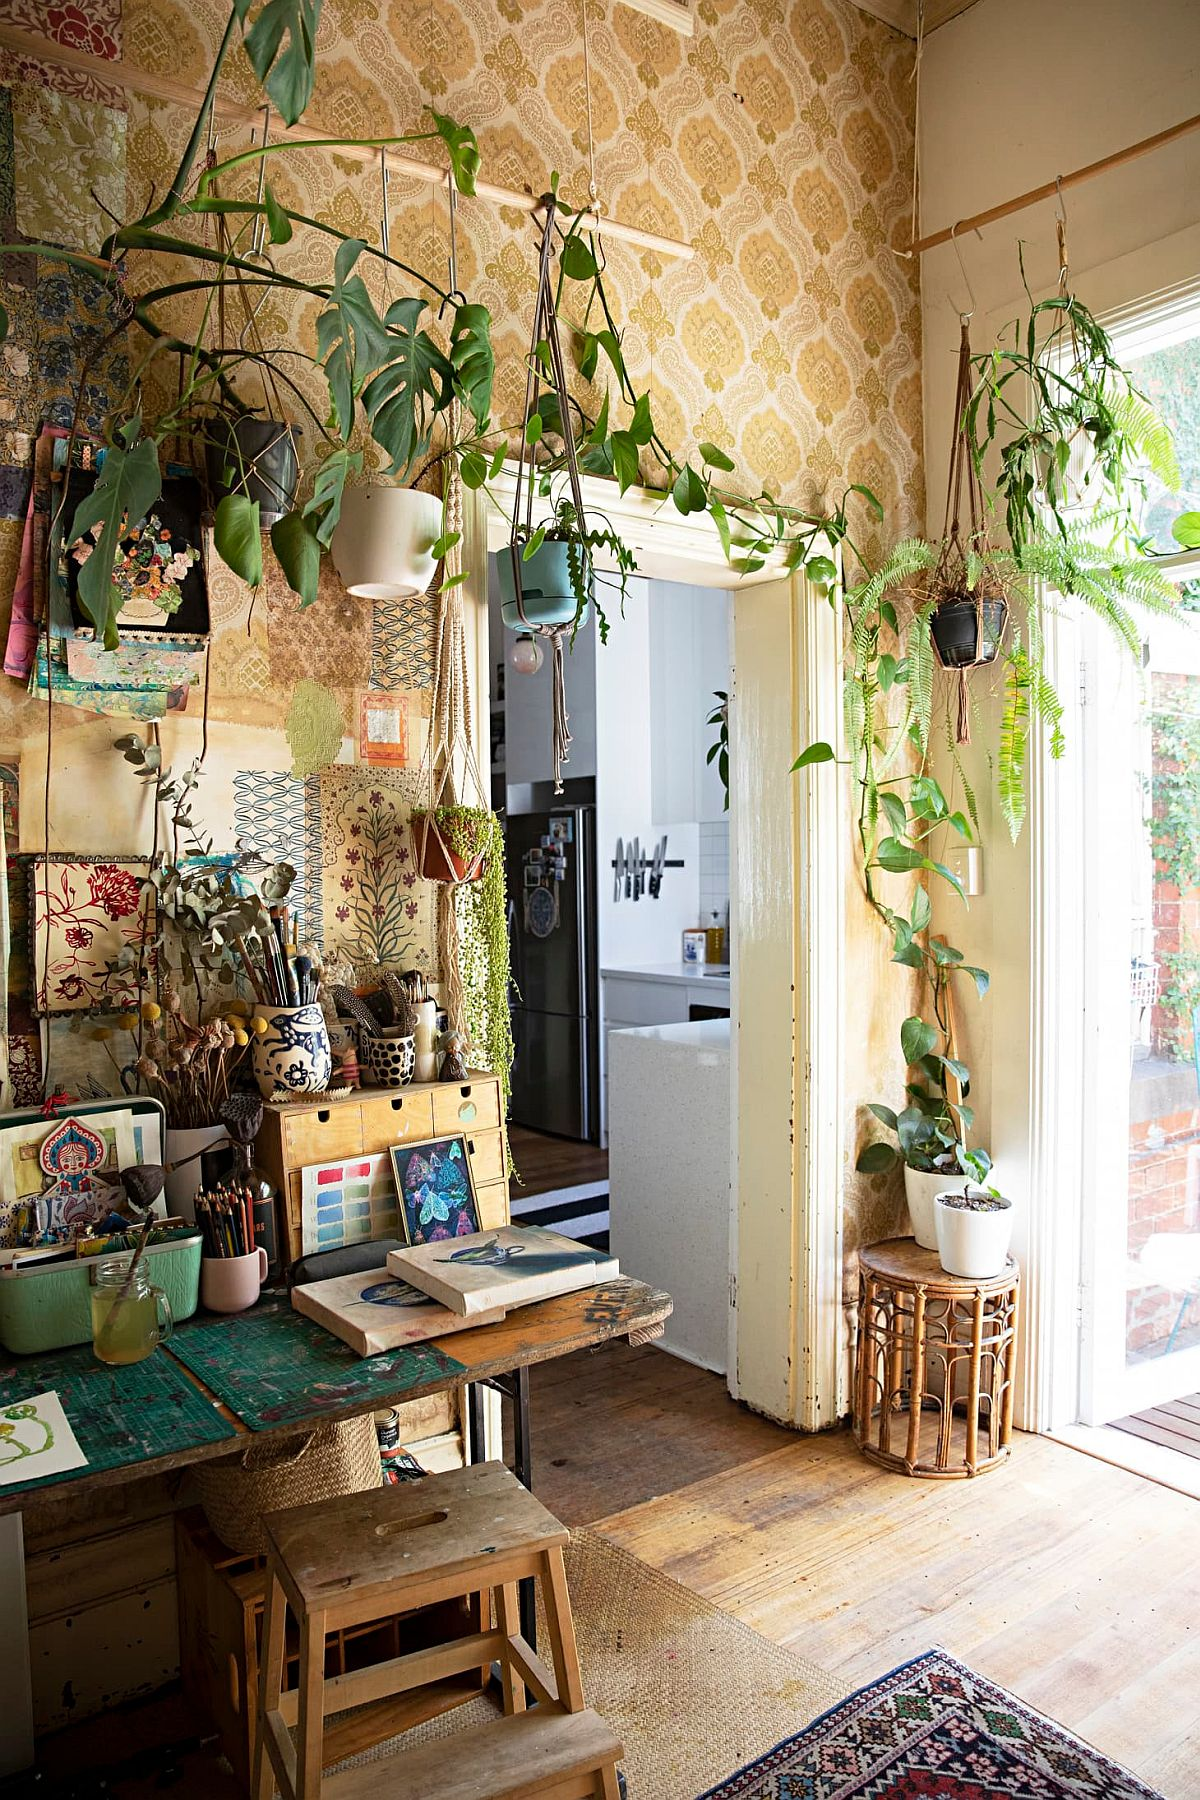 Modern eclectic home office in Melbourne with a creeper that adds greenery to the room